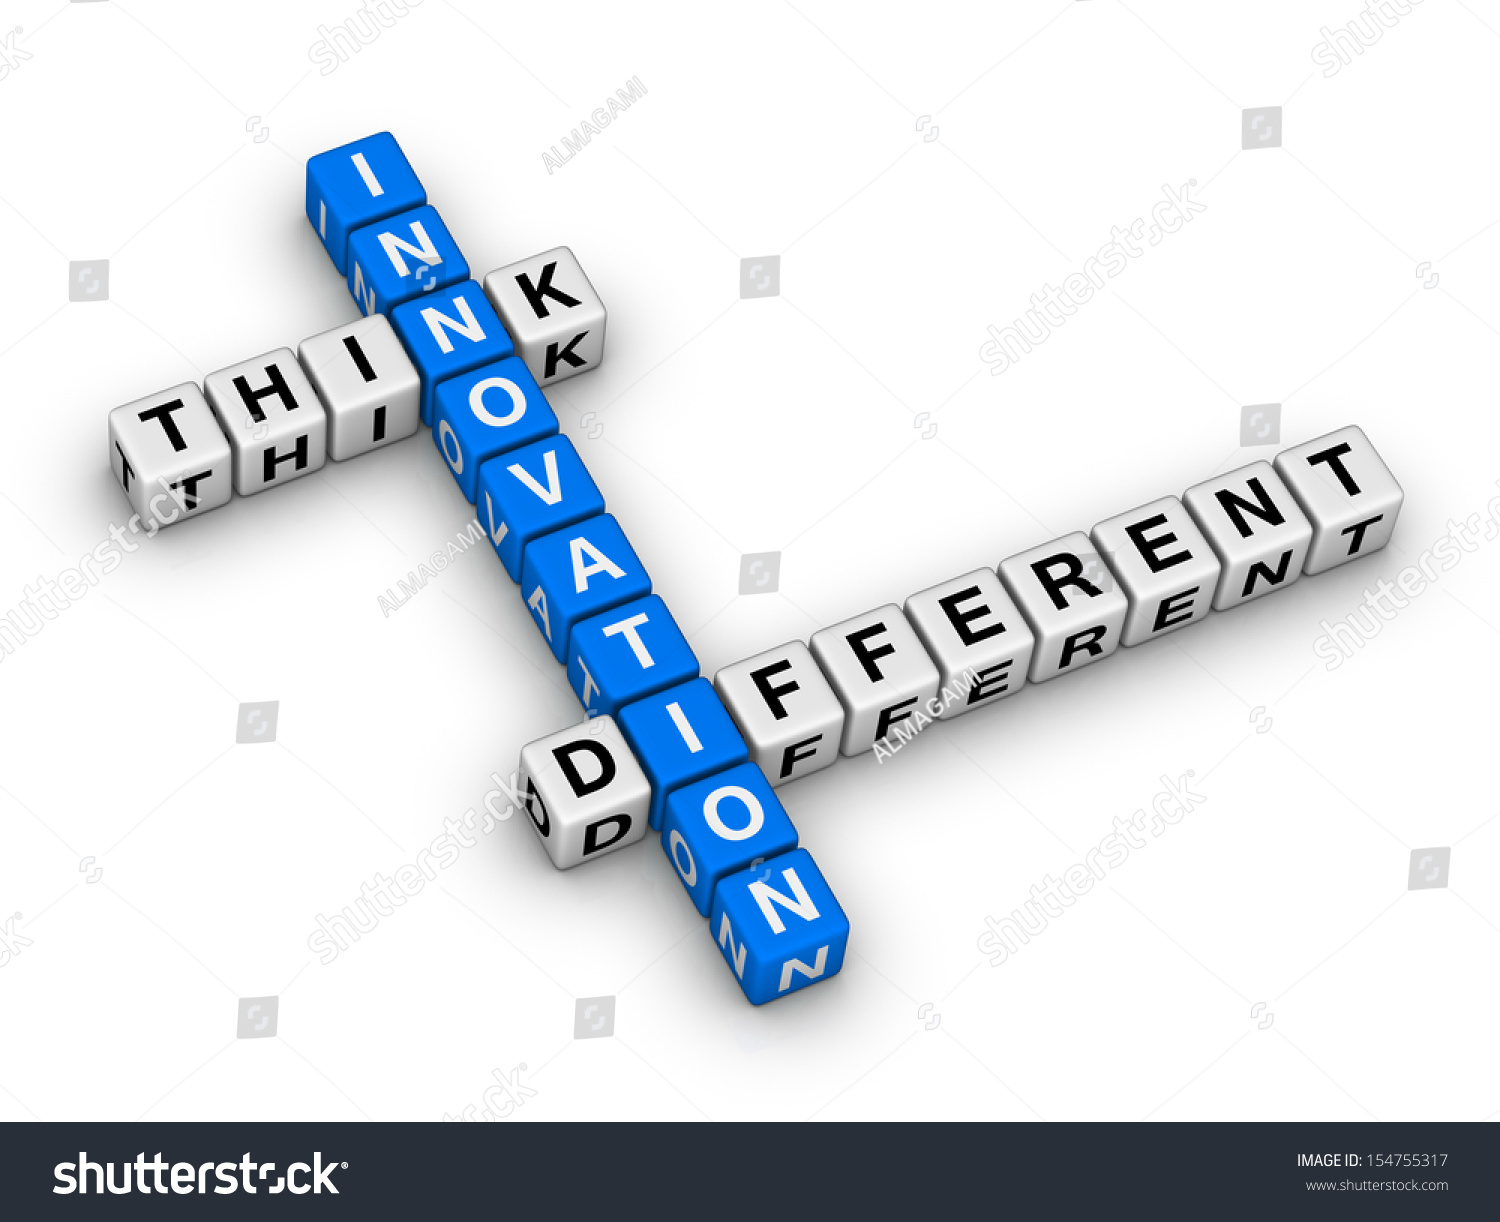 Innovation - Think Different Crossword Puzzle Stock Photo 154755317 ...